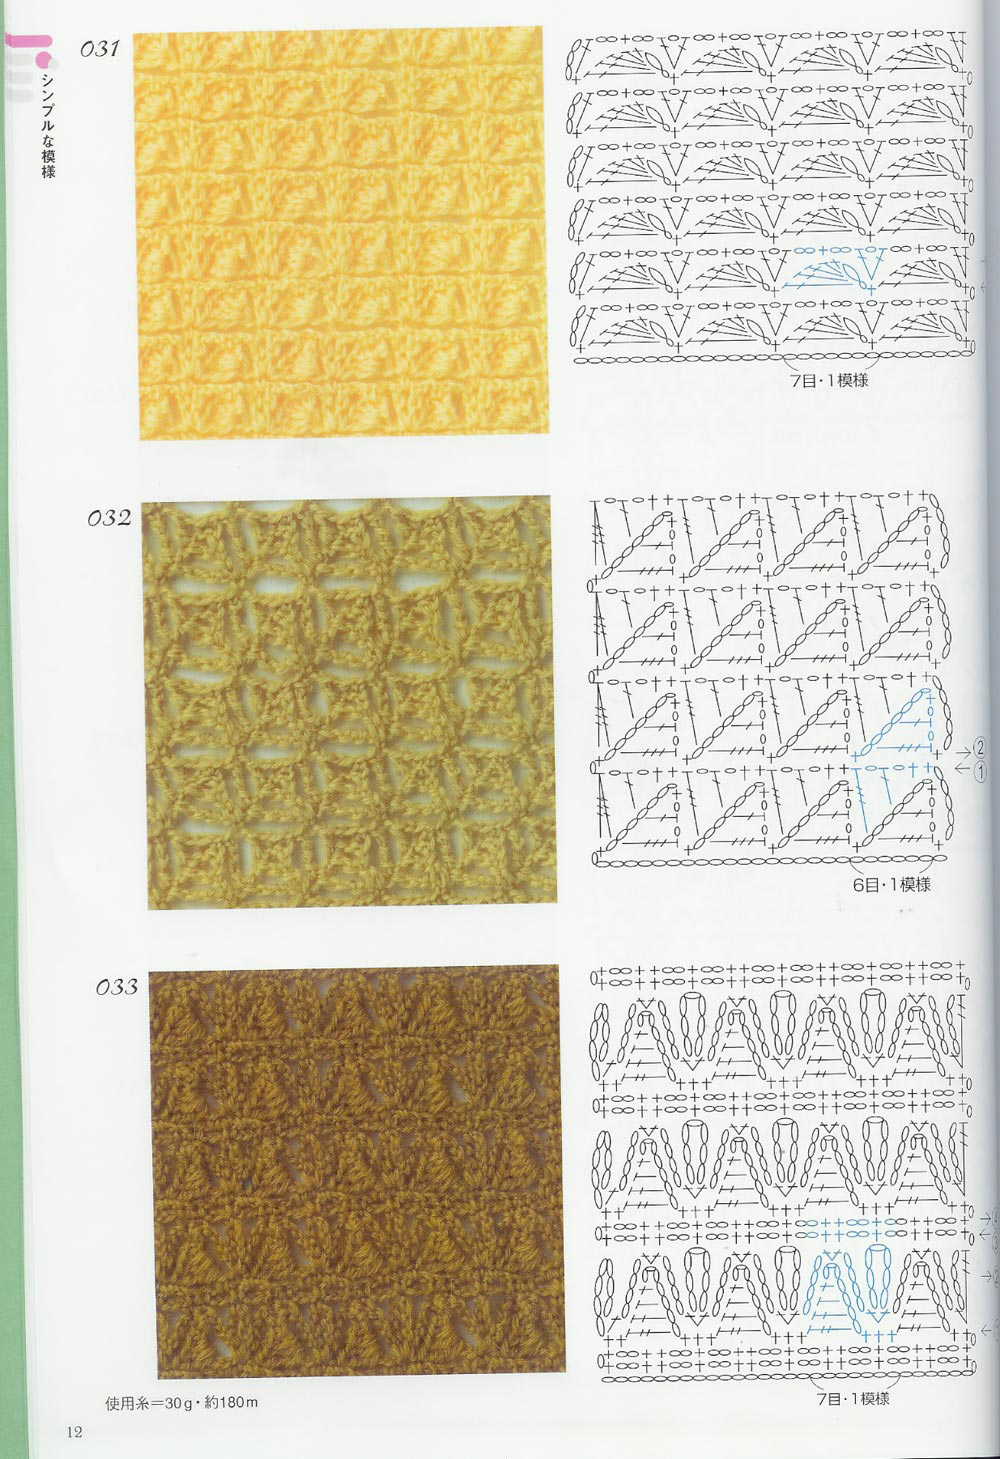 Crochet Patterns Book : crochet patterns book 300 10 jpg 1000 1459 1